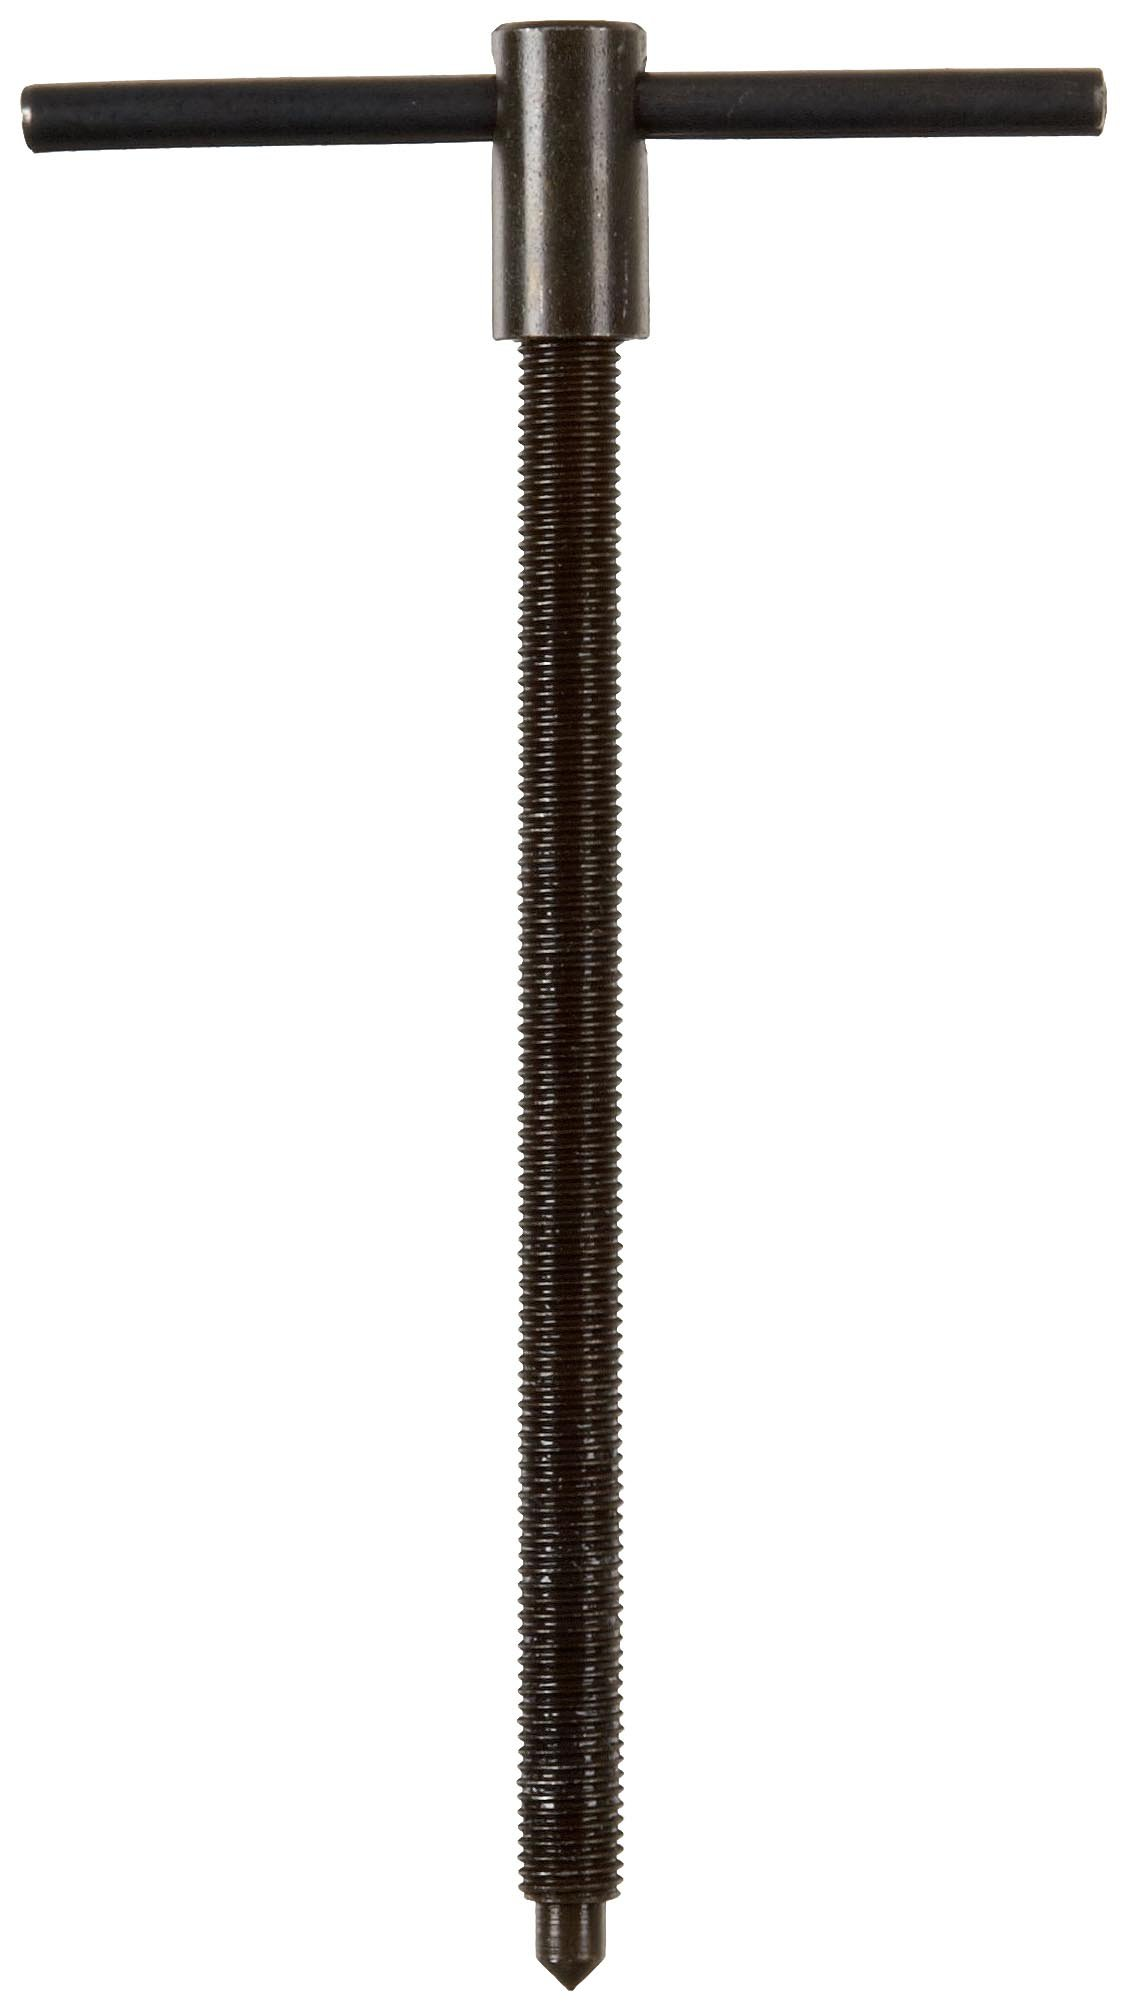 Posi Lock 10258 Puller Center Bolt, 5/16''Diameter, For Use With 102 and 202 Puller